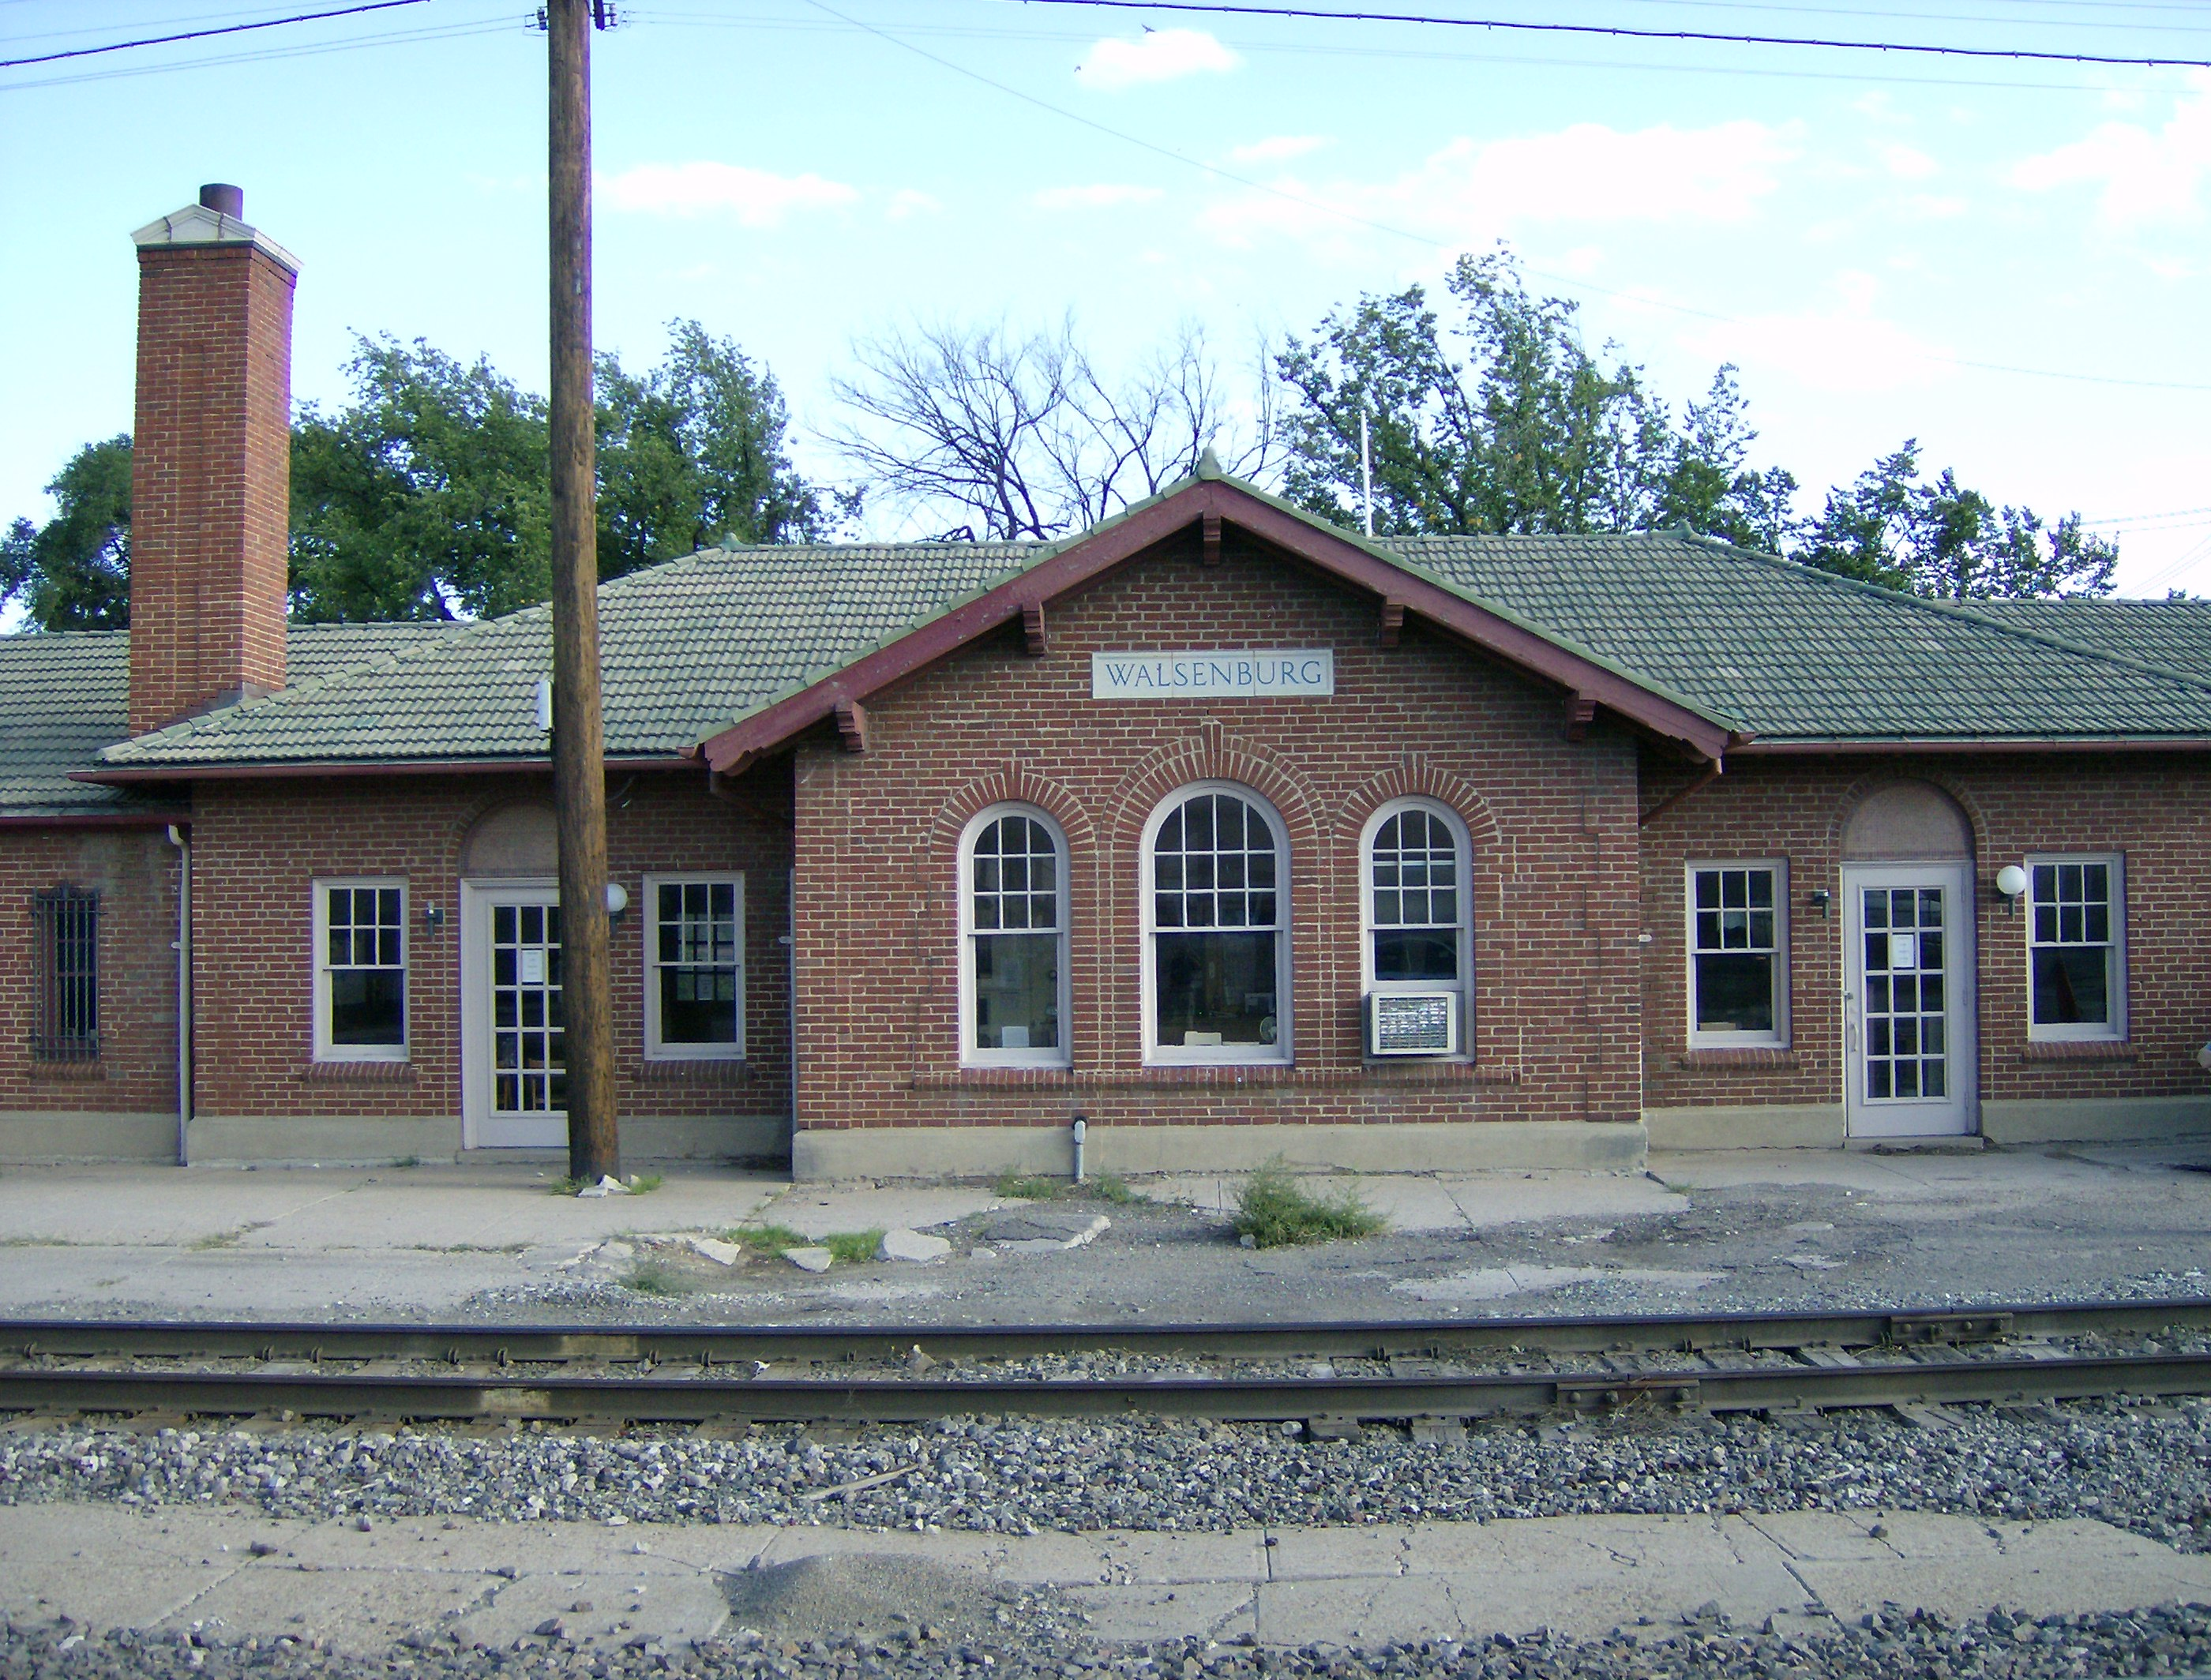 Walsenburg Station